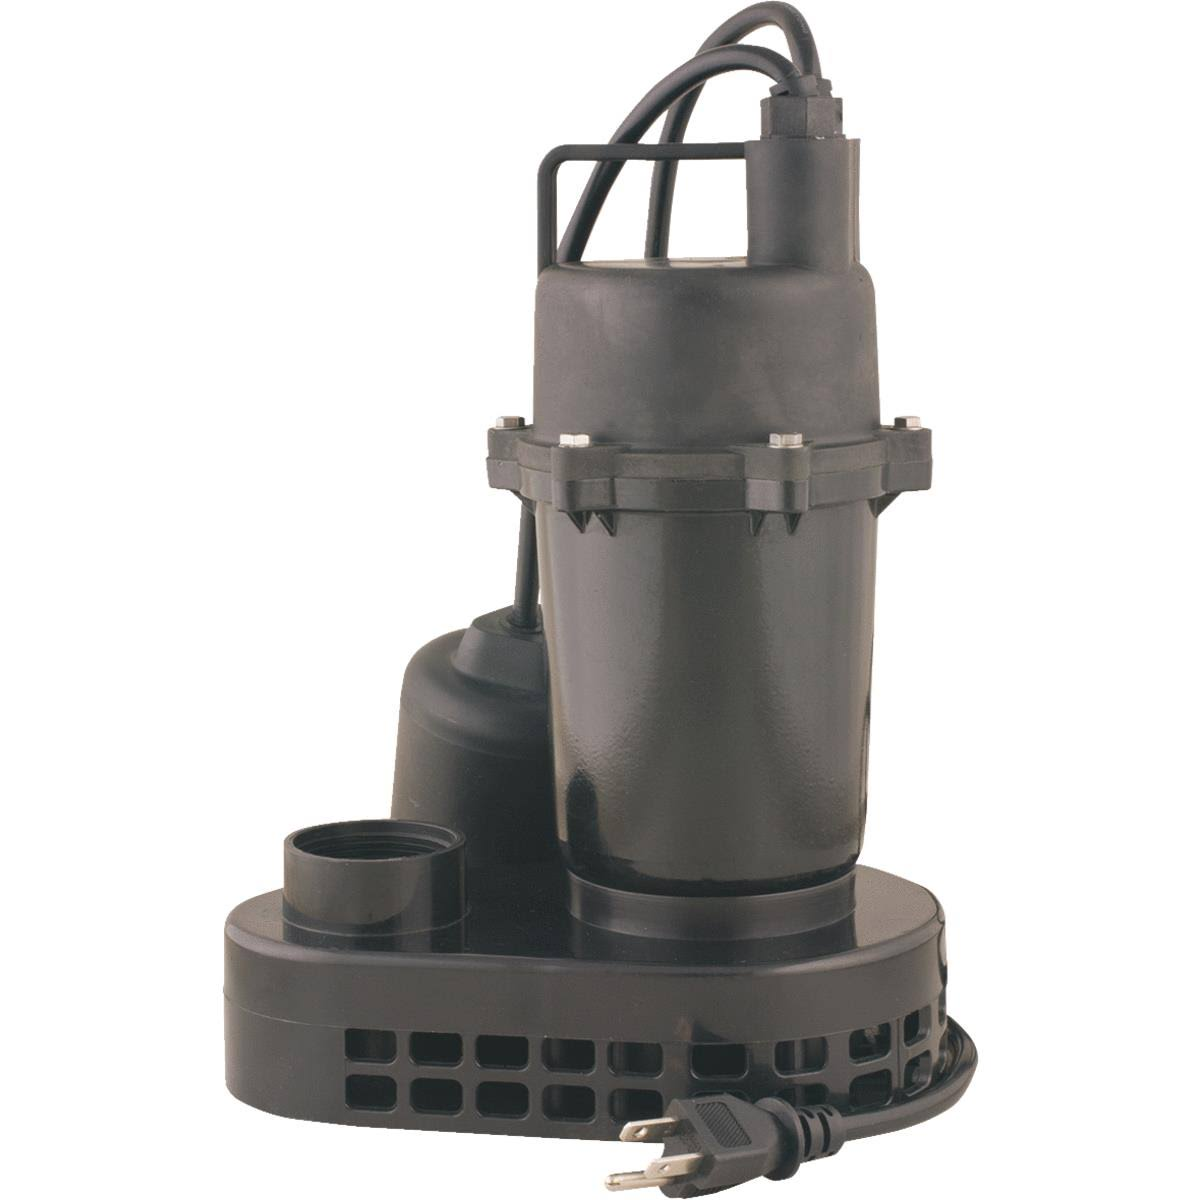 Do it Submersible Sump Pump - 1/4 HP